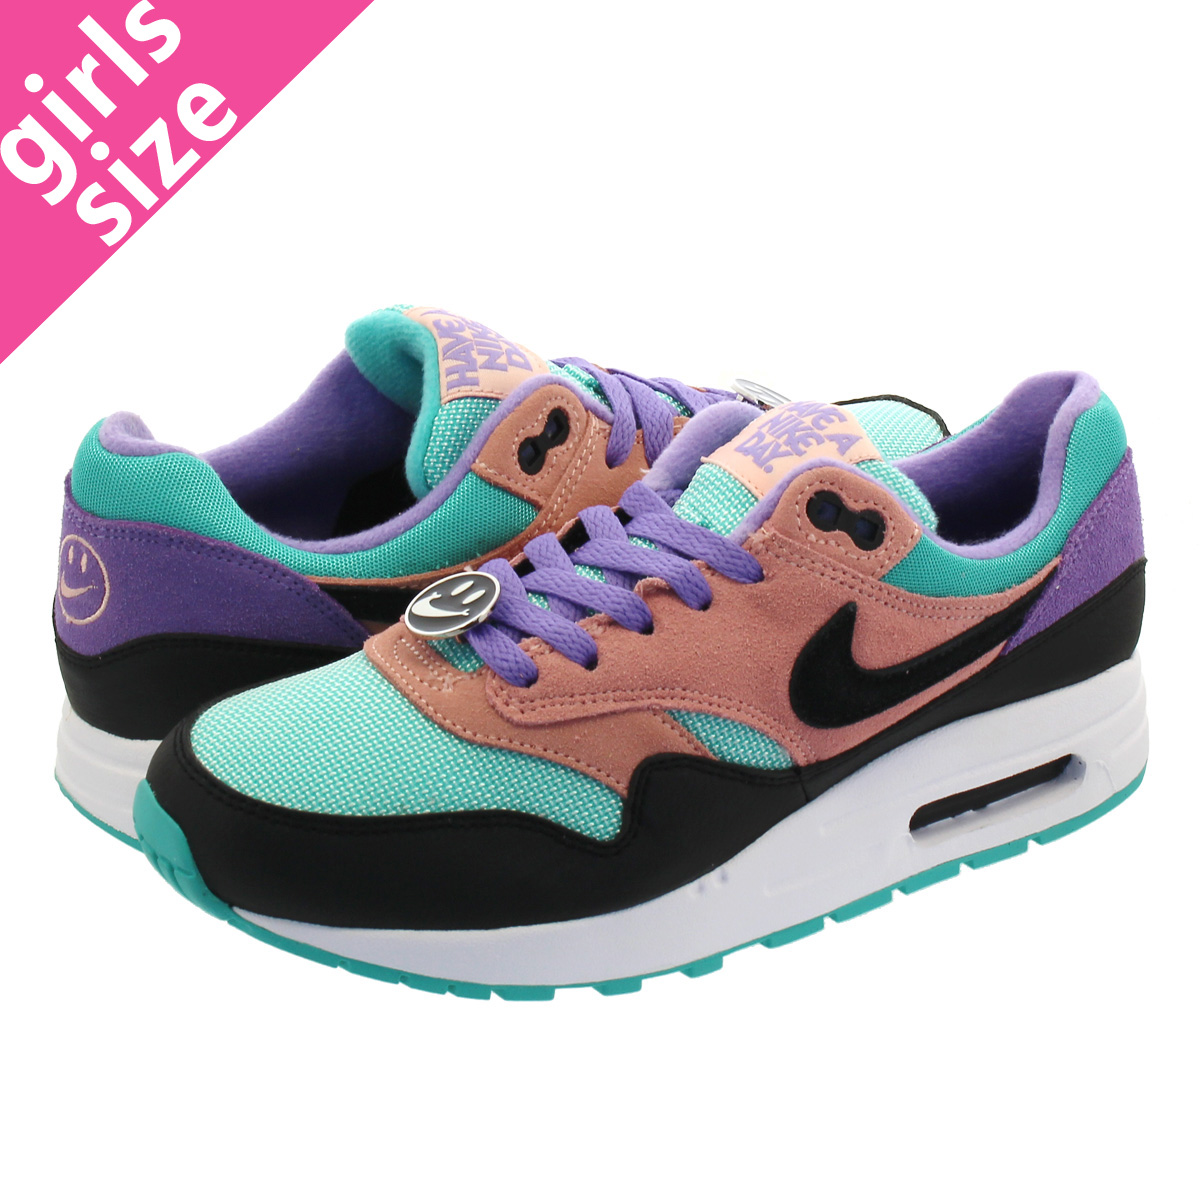 timeless design 343b9 2bd5c NIKE AIR MAX 1 NK DAY GS Kie Ney AMAX 1 NK DAY GS BLACK WHITE SPACE PURPLE  at8131-001